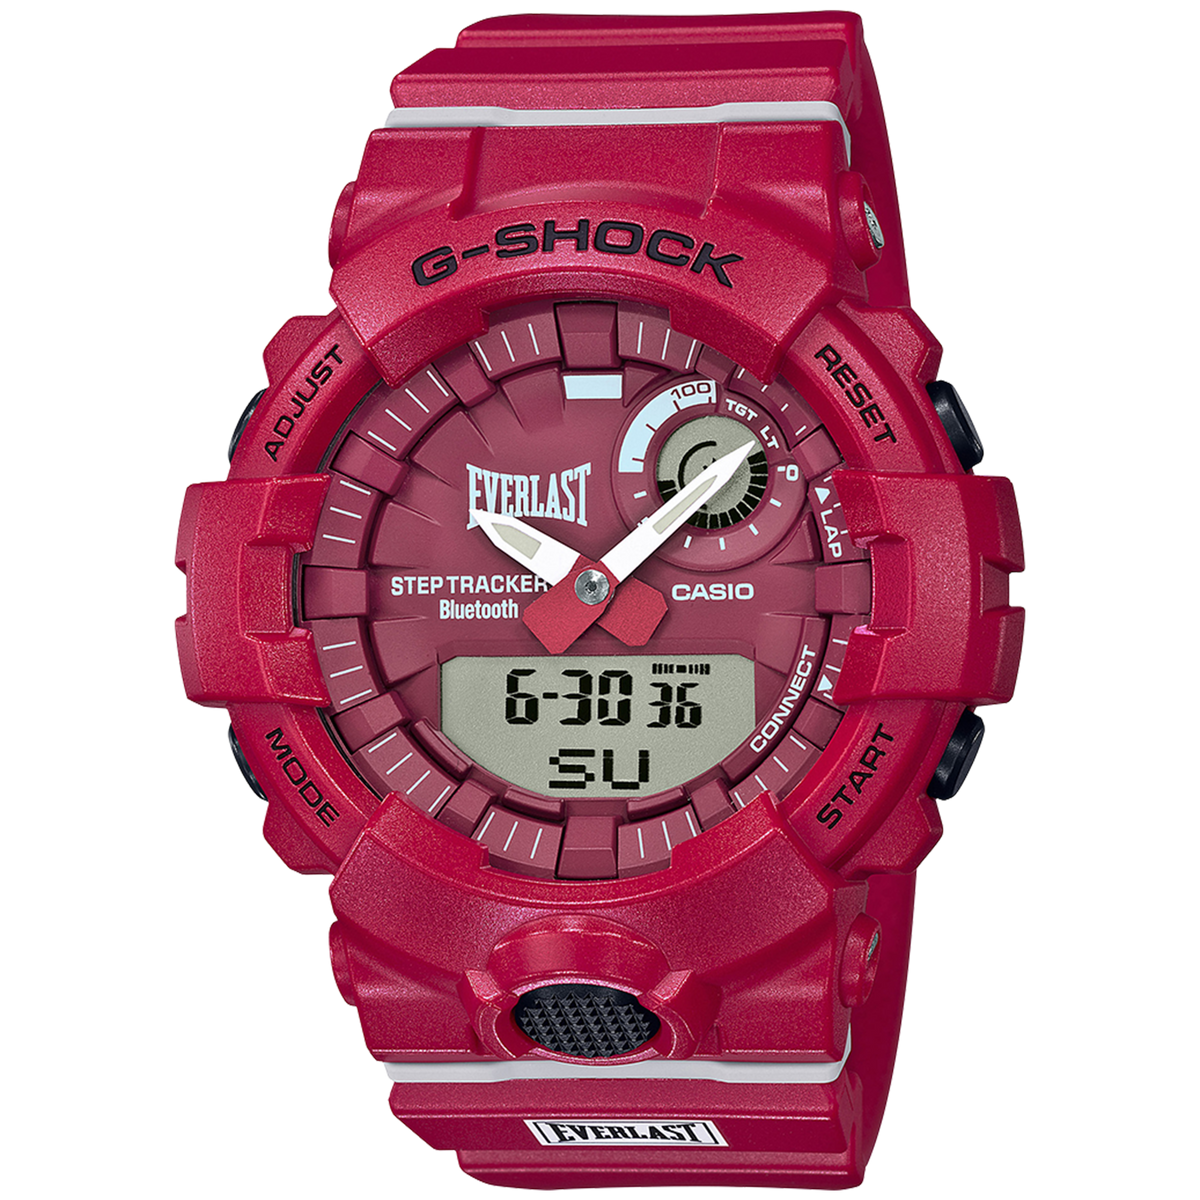 "Casio G-Shock - Limited Edition ""EVERLAST"" - BlueTooth Connected"